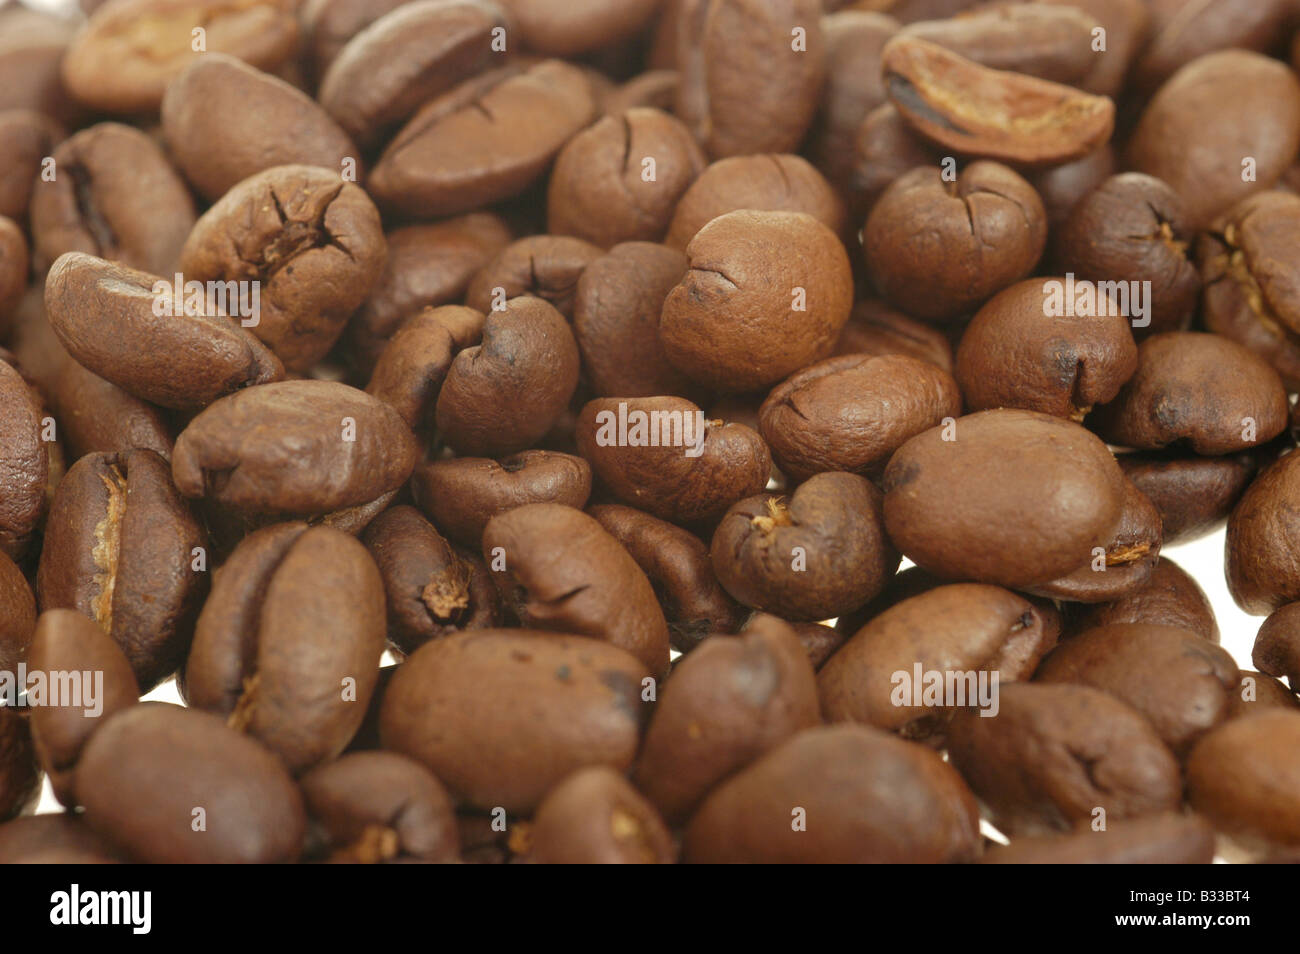 coffee beans presented studio taking - Stock Image